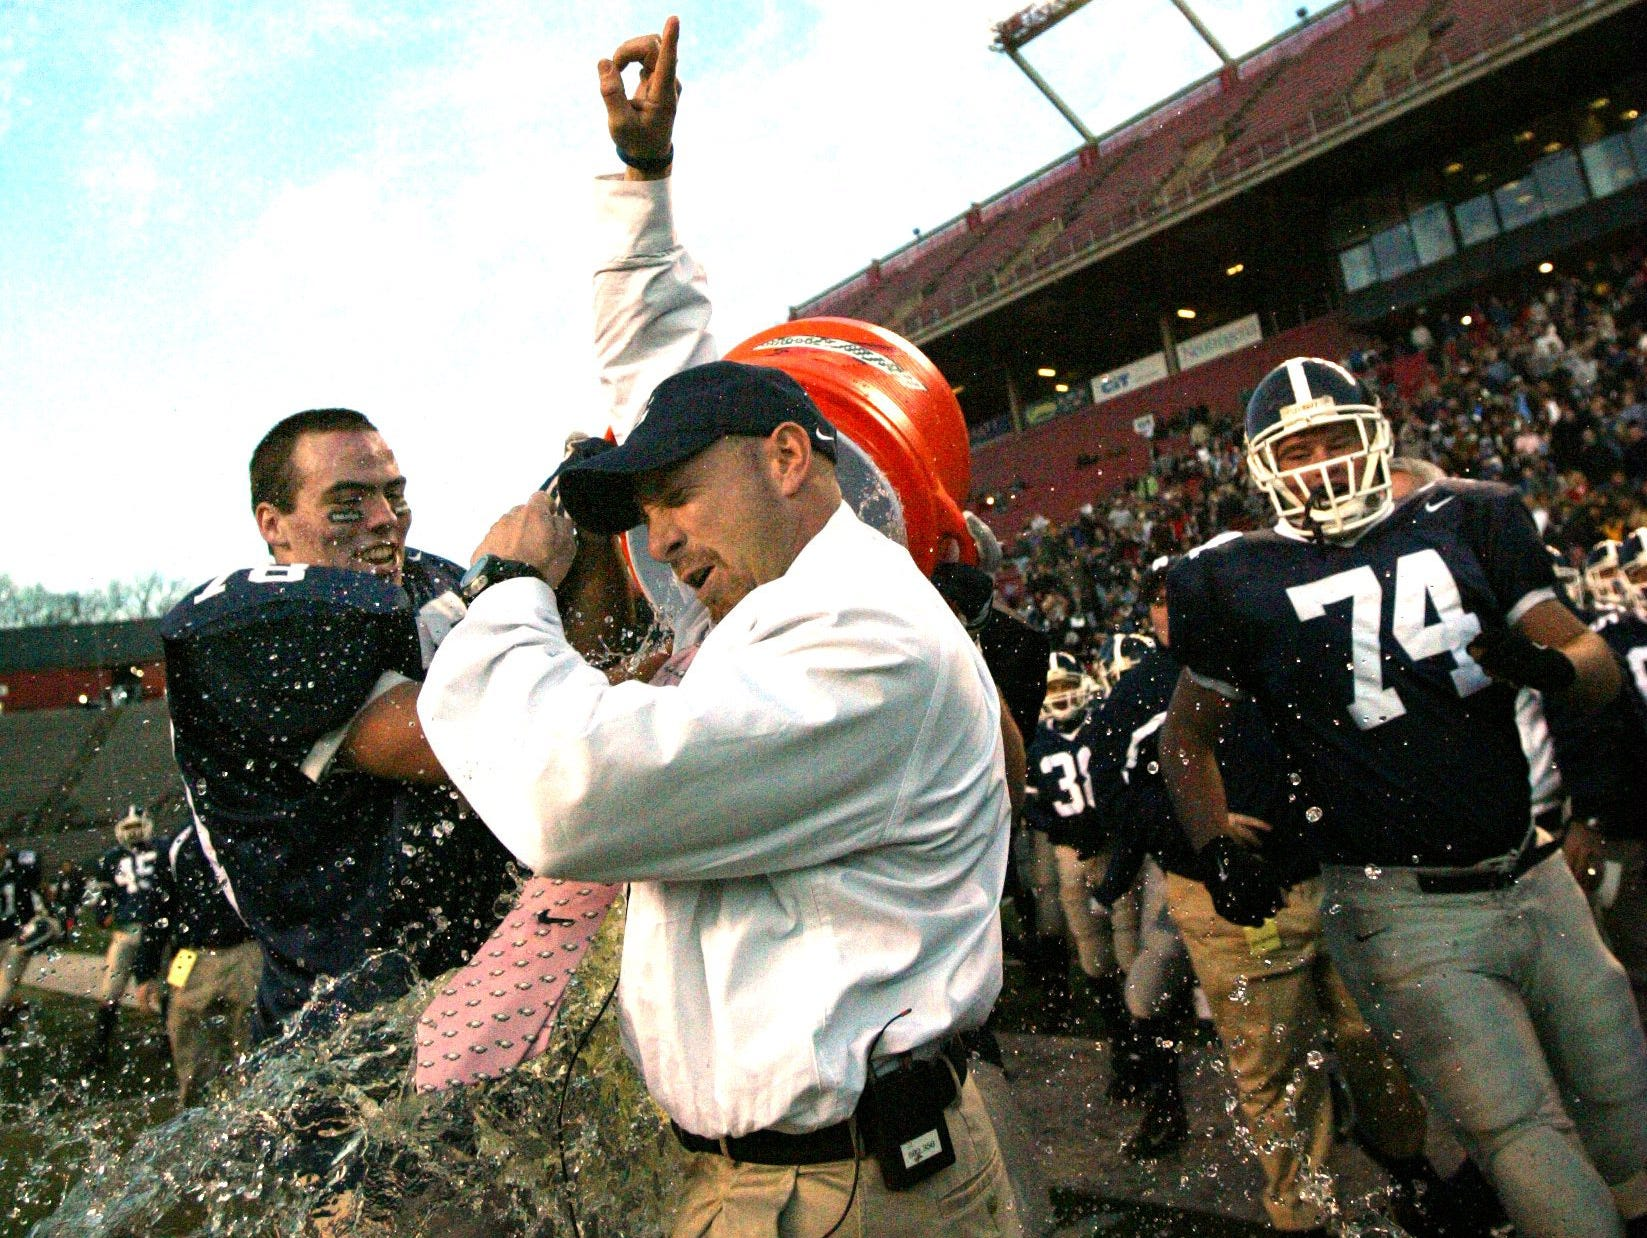 Middletown South's head coach, Steve Antonucci gets a Gatorade bath form his players after their state championship in 2006.